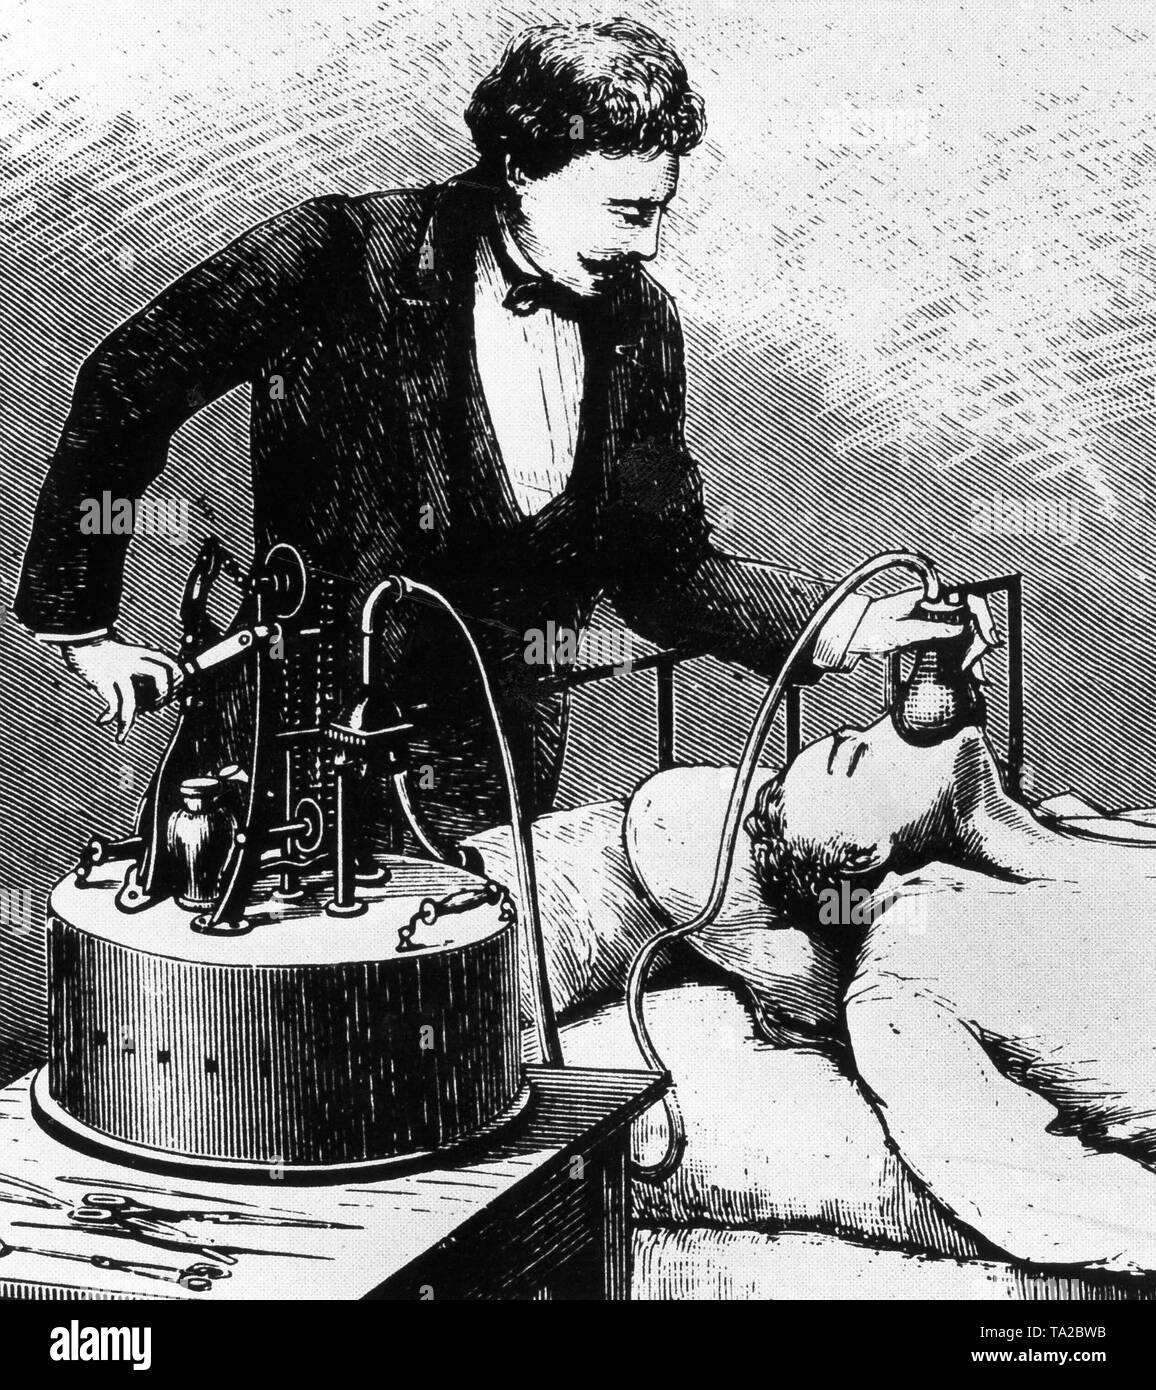 Anesthesia of a patient with chloroform, the doctor still wears a business suit, circa 1875 - Stock Image